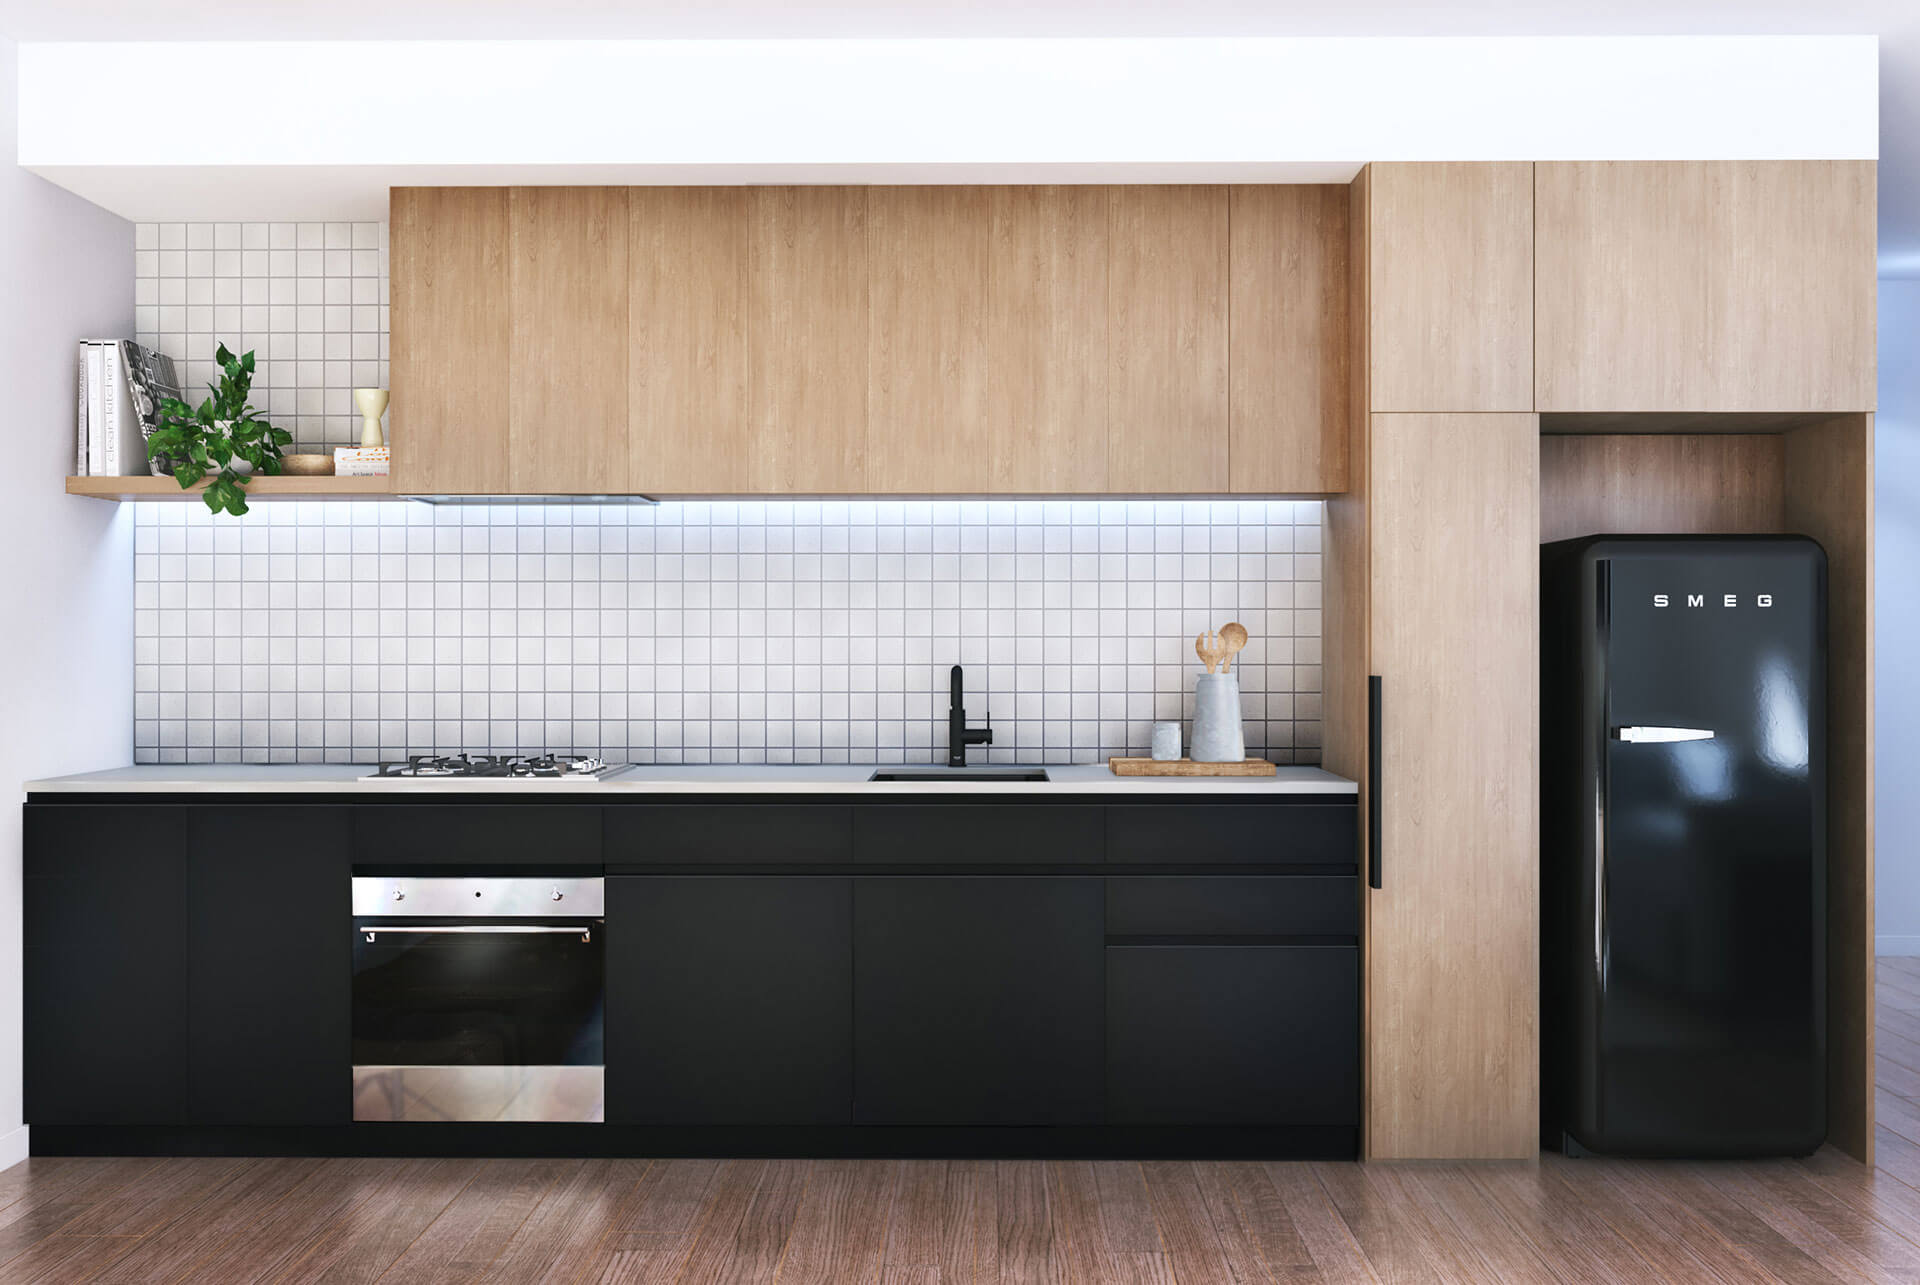 Apt_kitchen_12142017.jpg